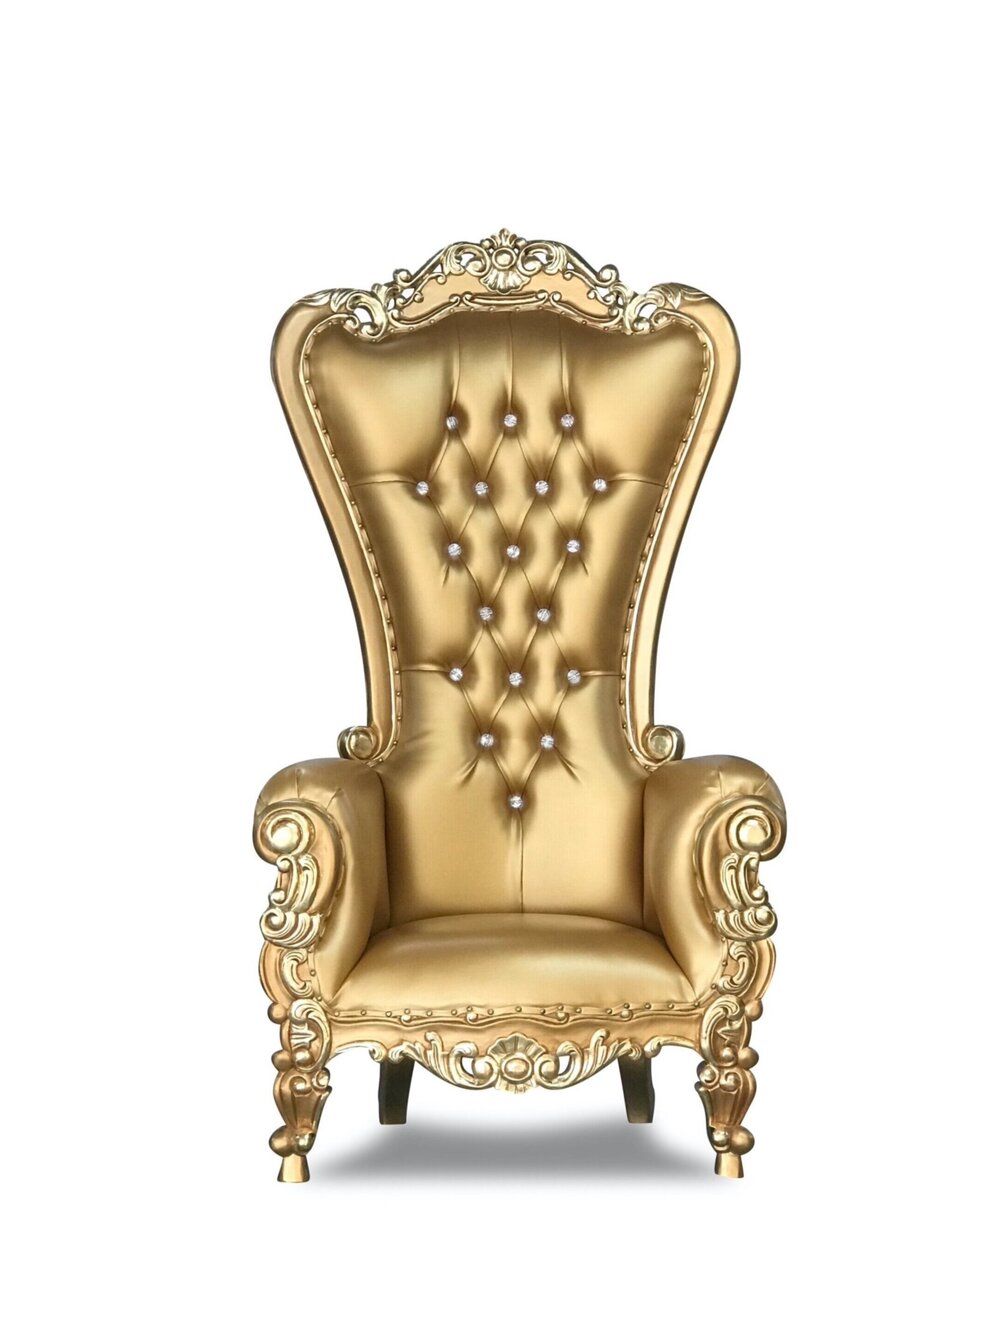 Gold and Gold Throne Chair